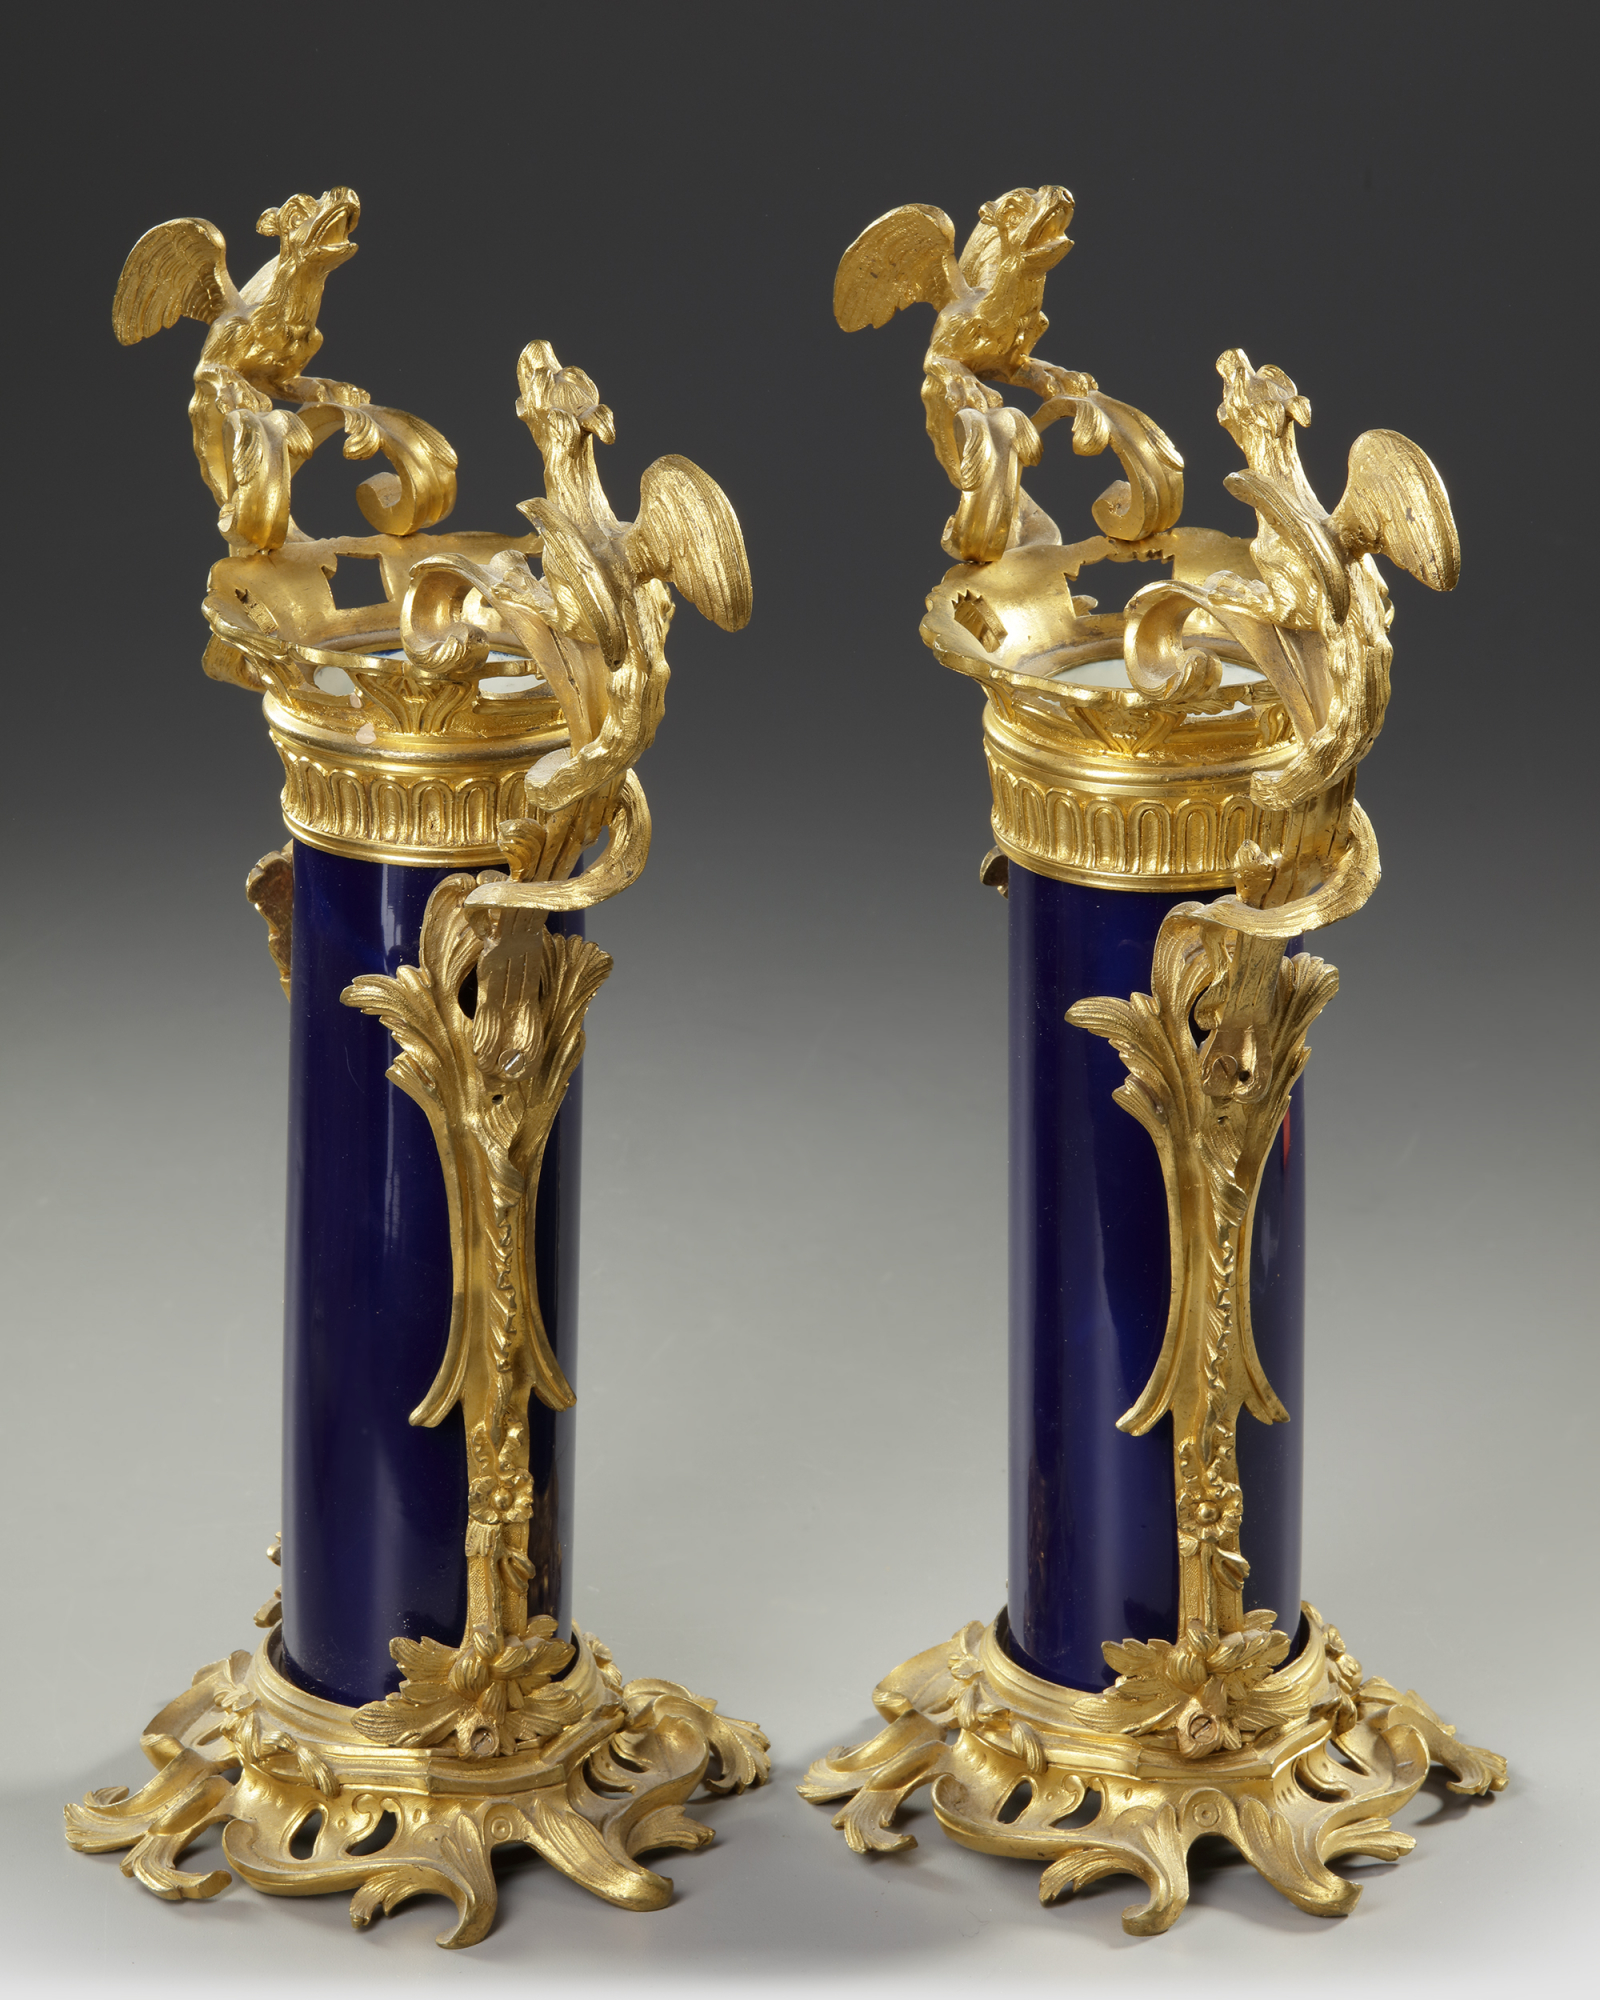 A PAIR OF FRENCH BLUE PORCELAIN VASES, 19TH CENTURY - Image 3 of 3